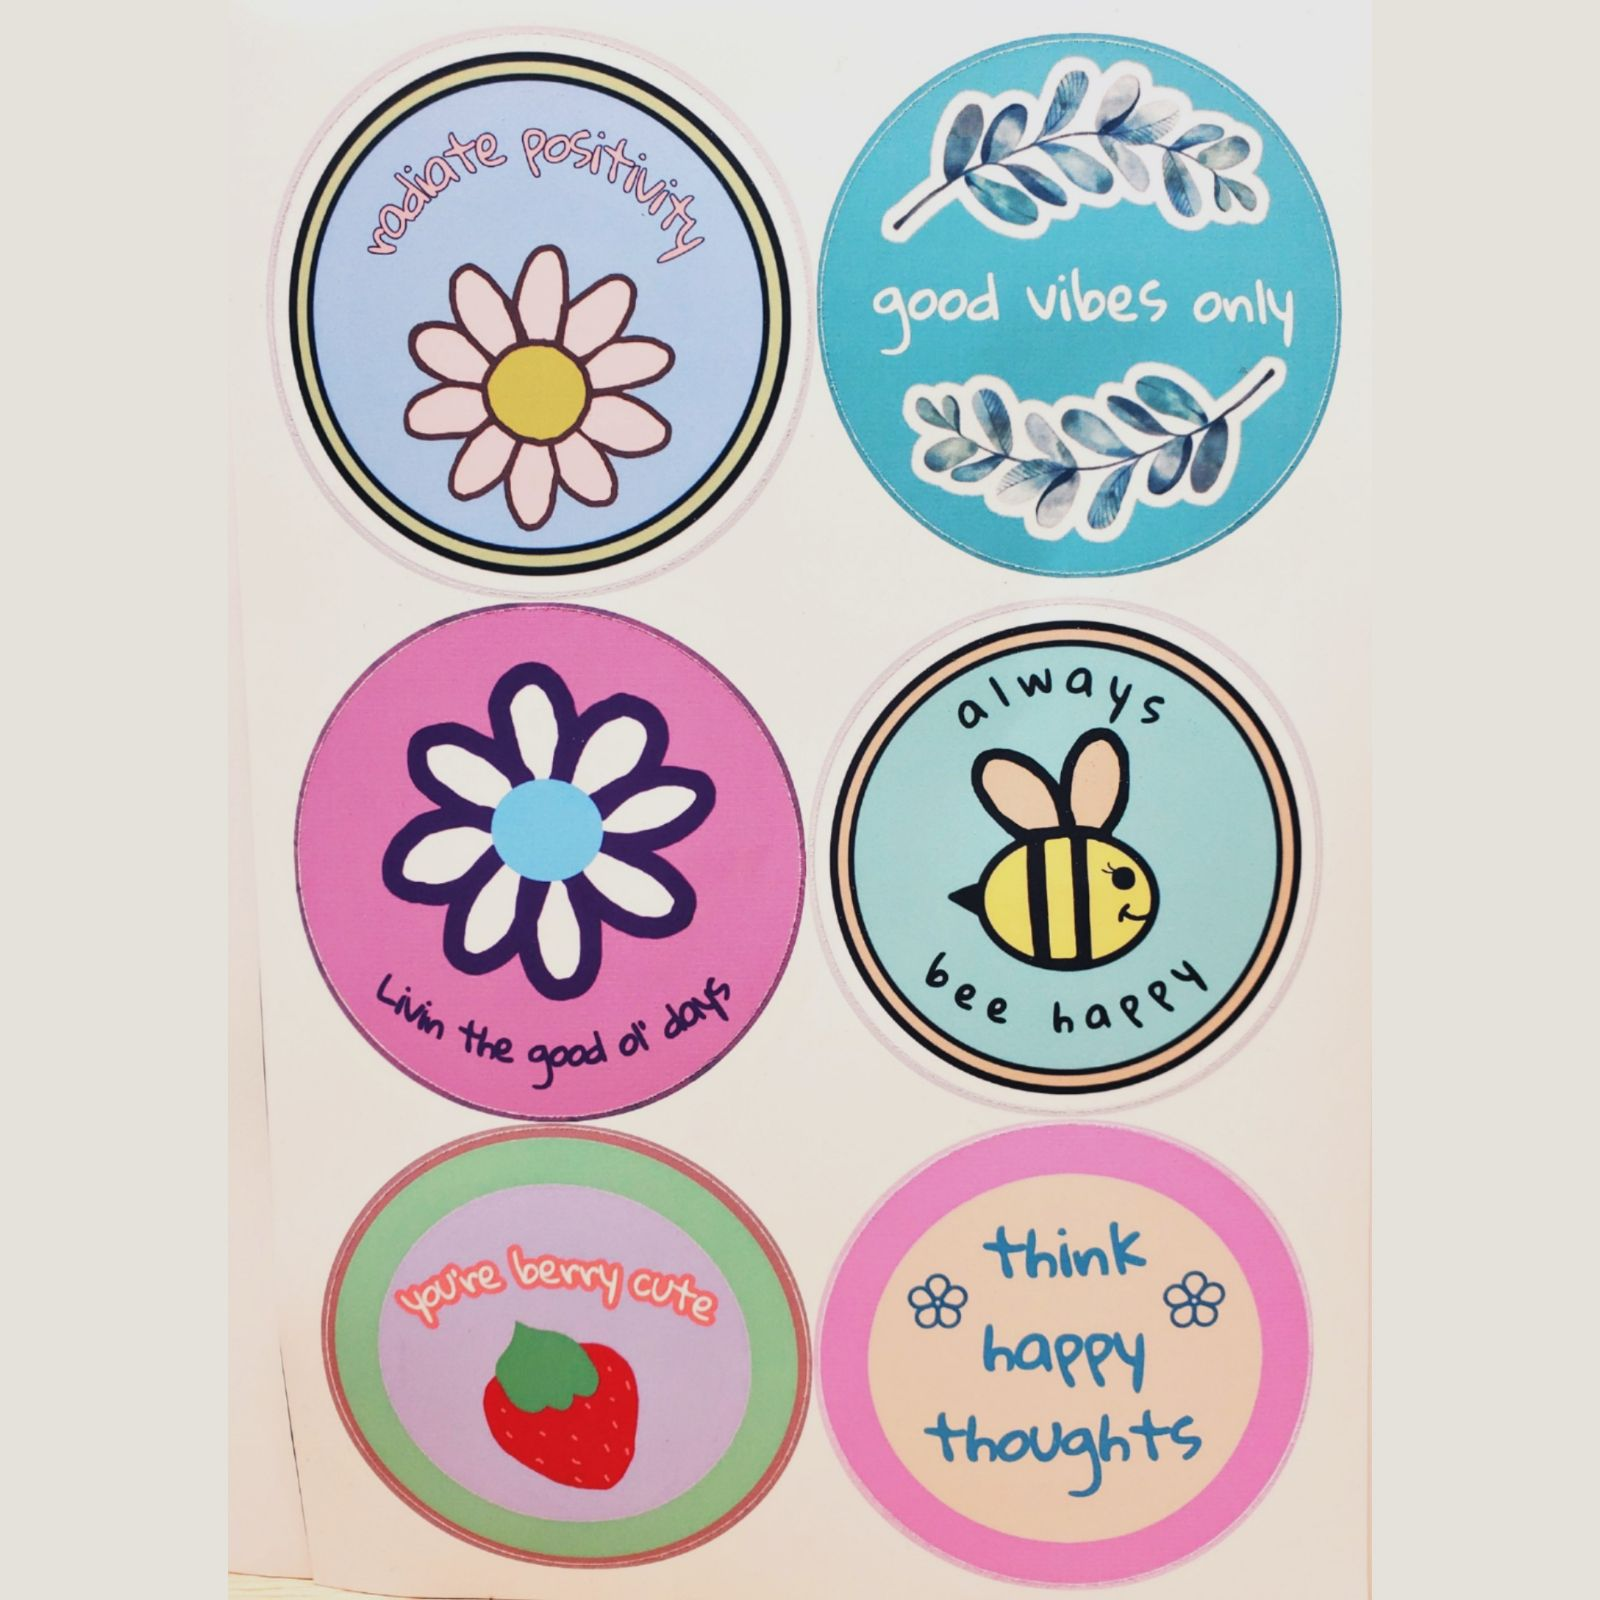 Pack of 6 positivity stickers